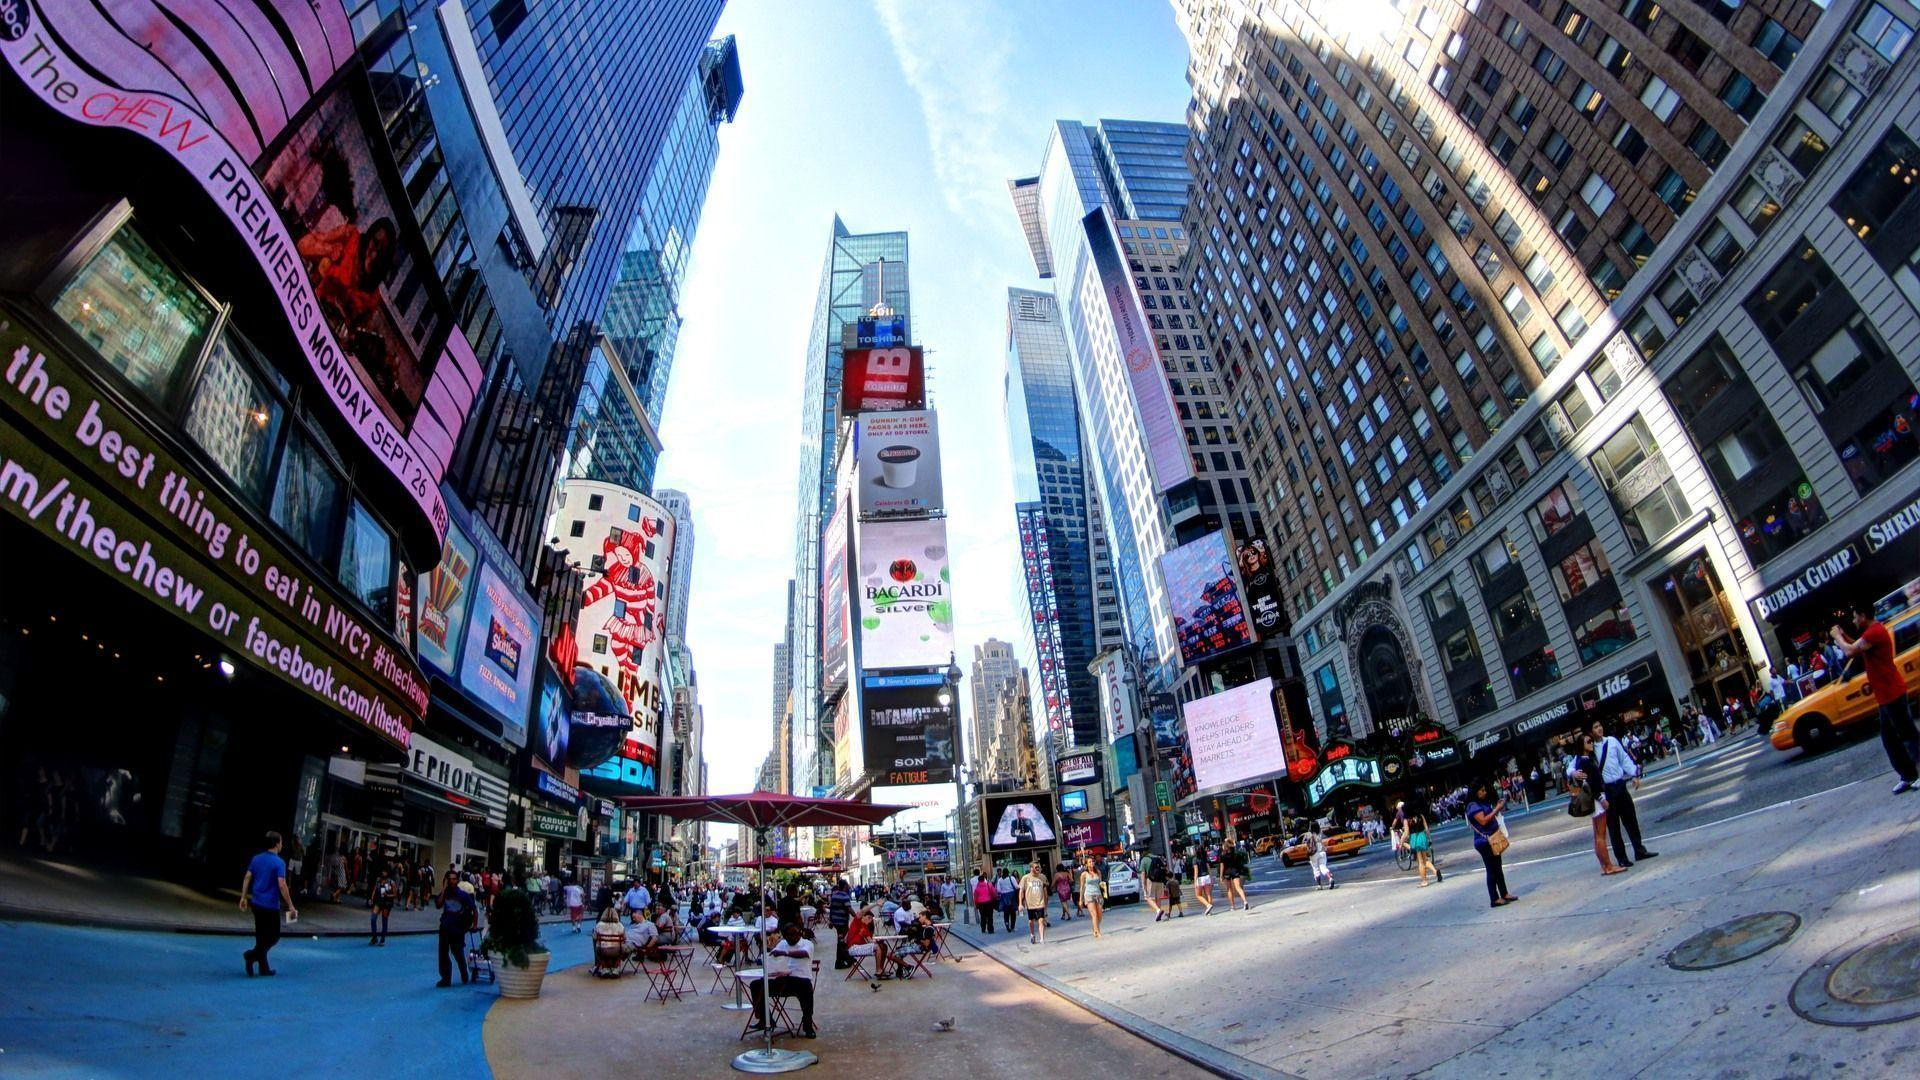 Time Square New York U.S. - HD Travel photos and wallpapers